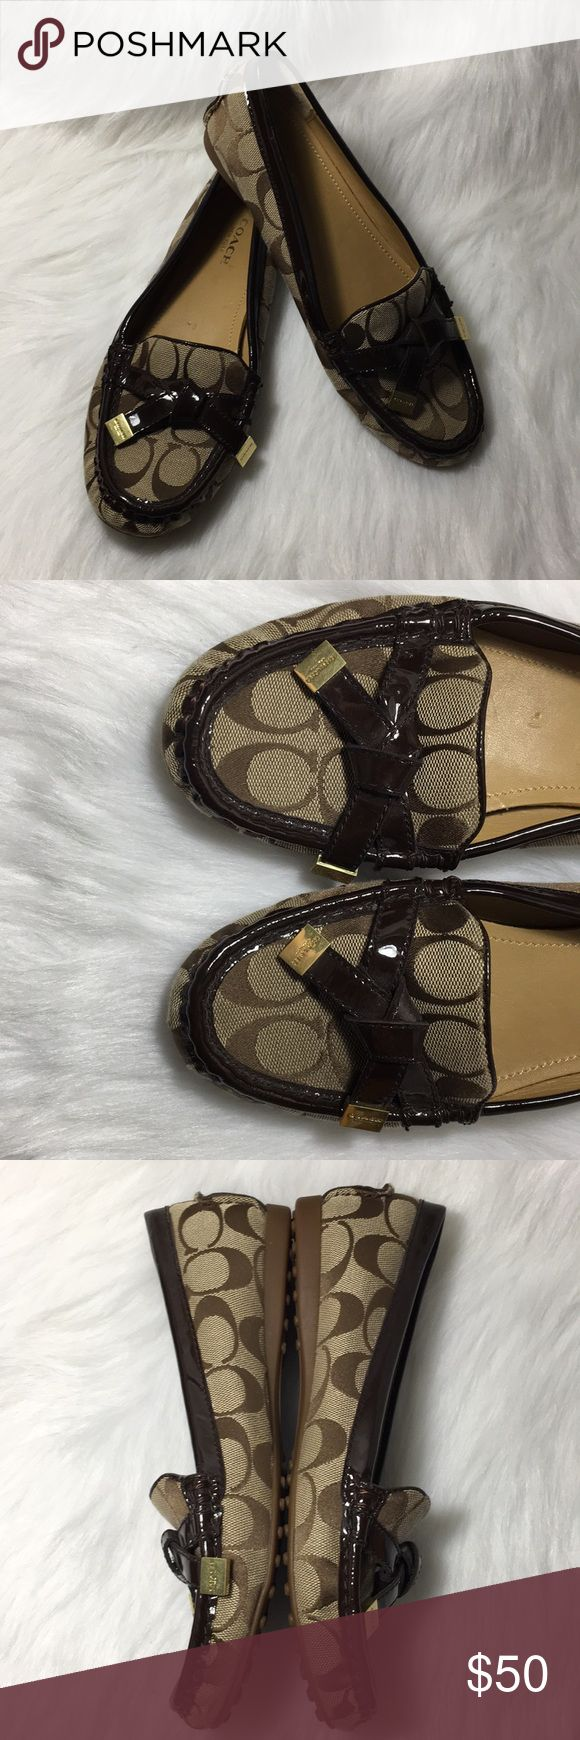 Coach flats Brown coach flats. Gently used. Few scratches on right shoe inside. Feel free to make me an offer! Coach Shoes Flats & Loafers